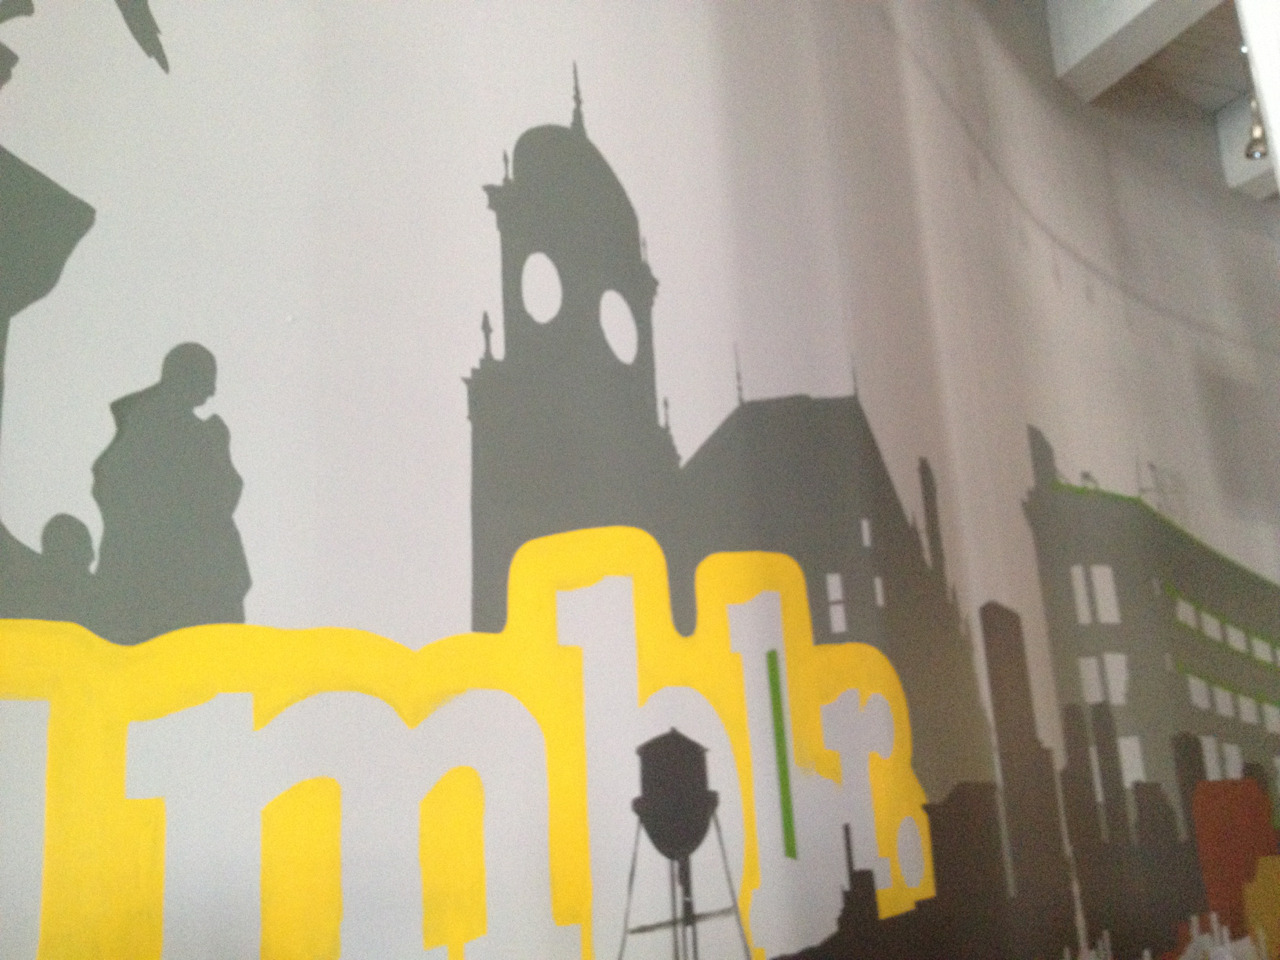 View from my desk: Main St. Station! Day three of the Tumblr wall mural by Seth Ganz and Matt Flowers